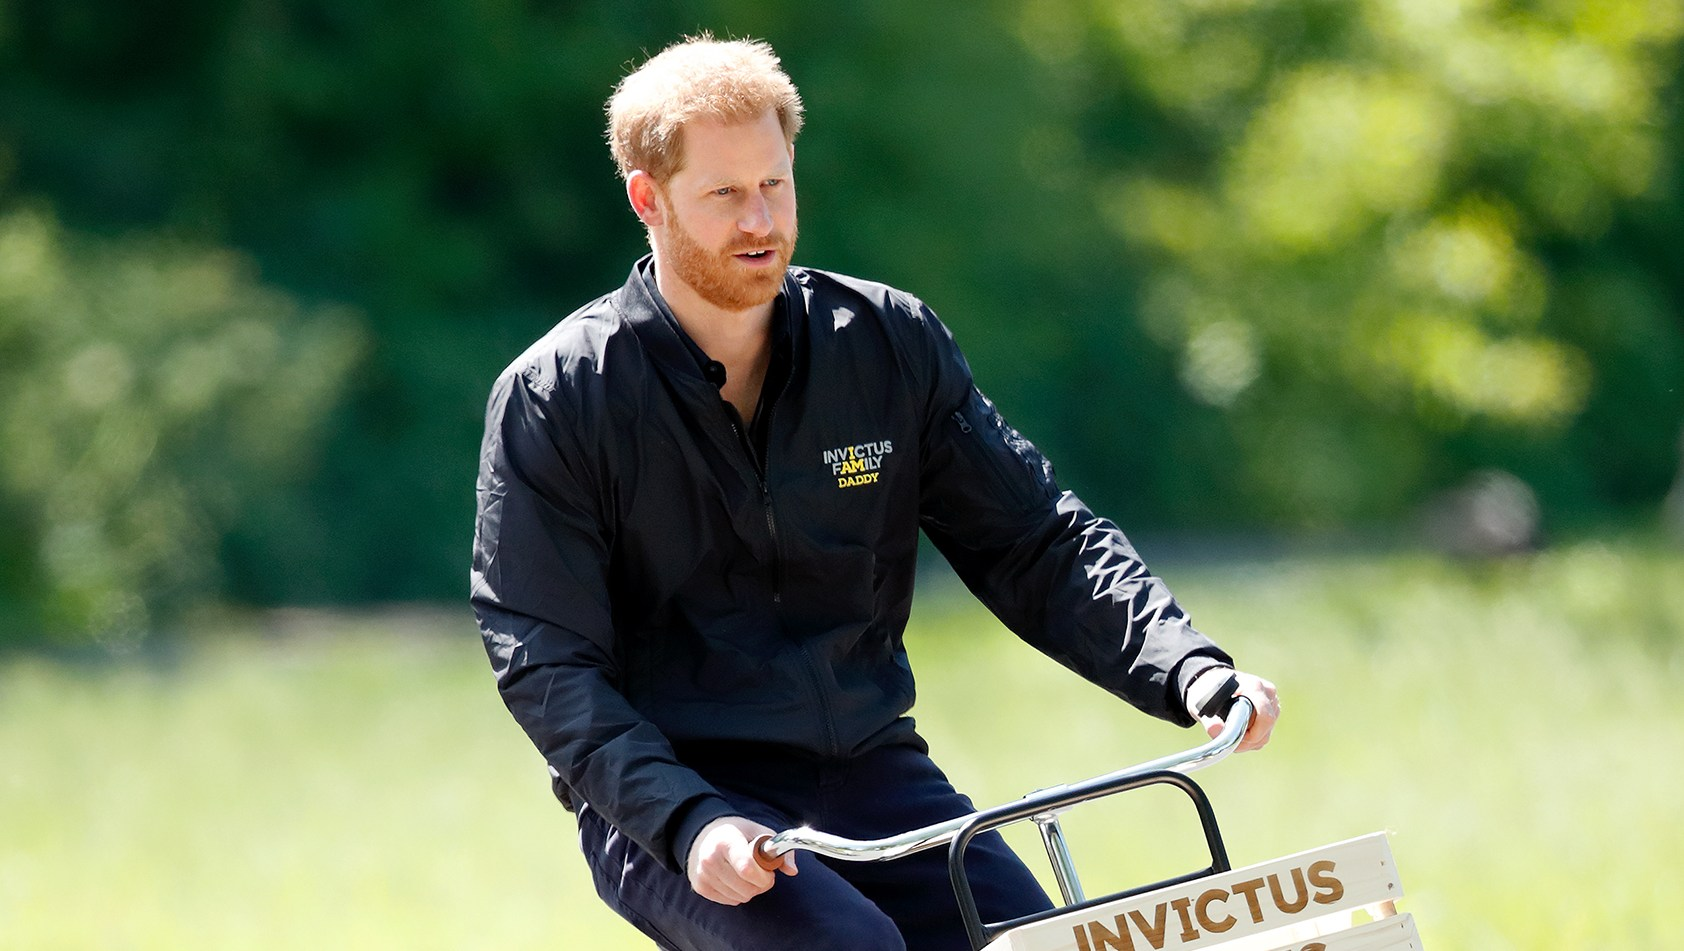 Prince Harry Bike